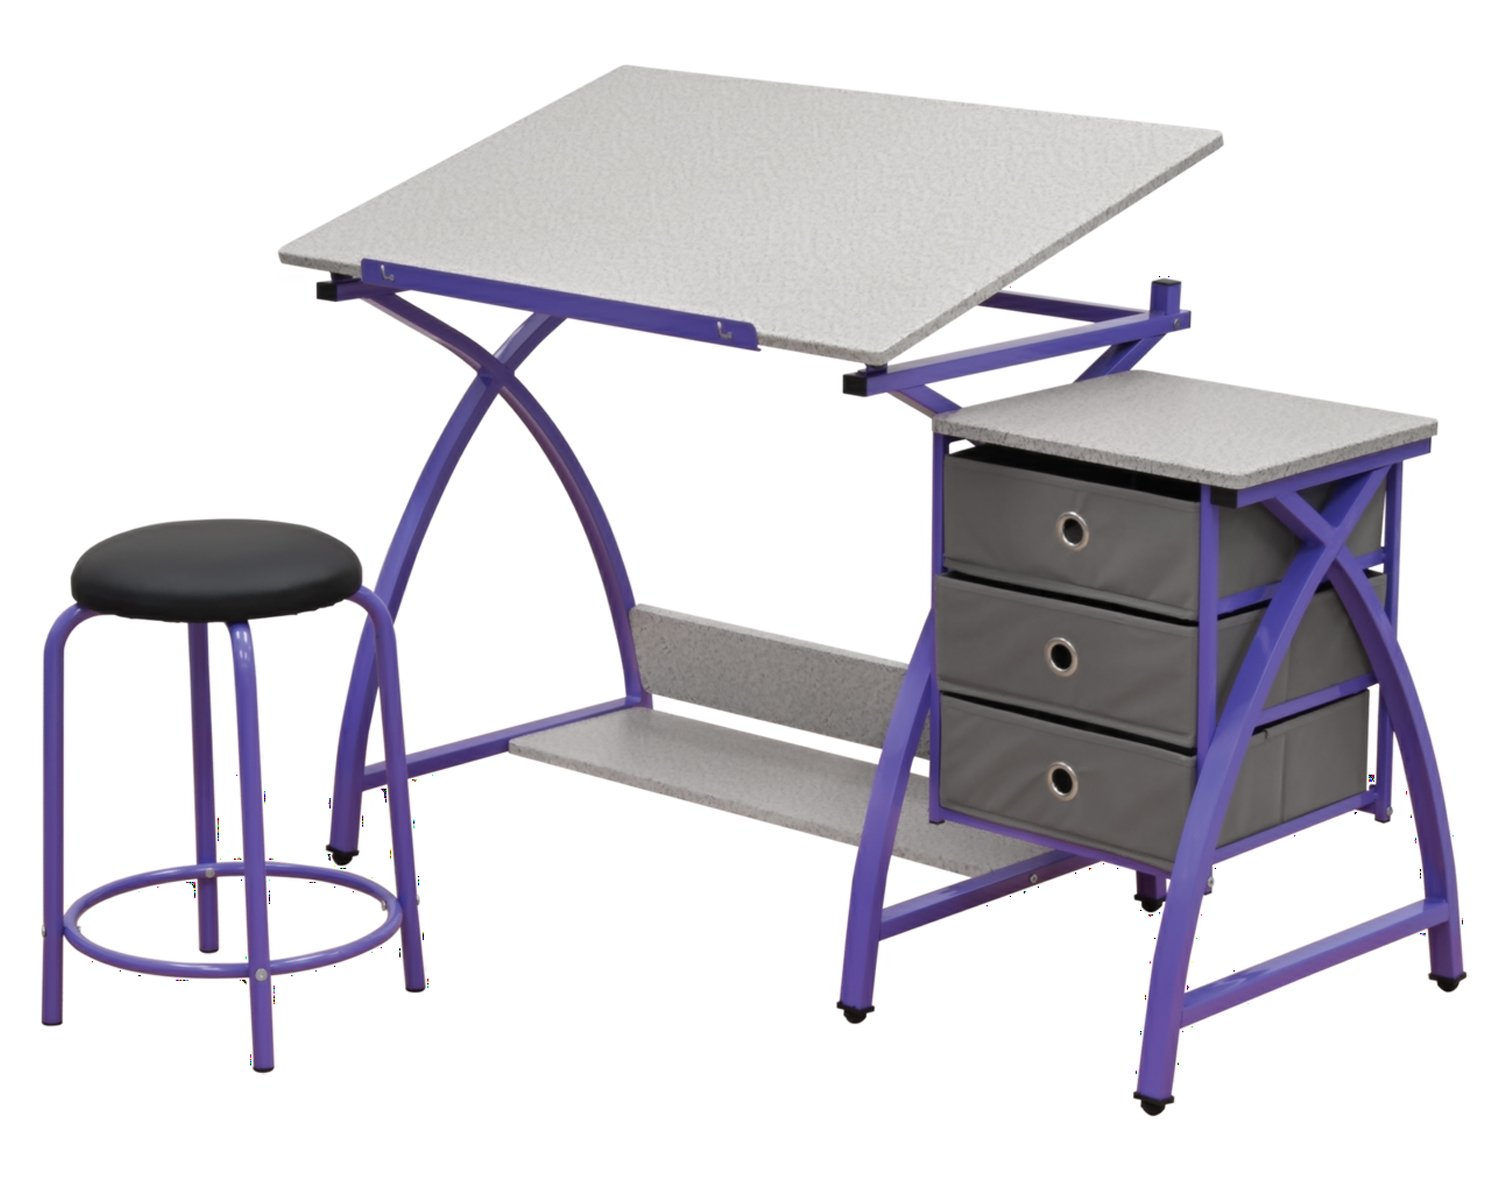 Offex Home Comet Center with Stool Purple/Spatter Gray by Offex (Image #1)